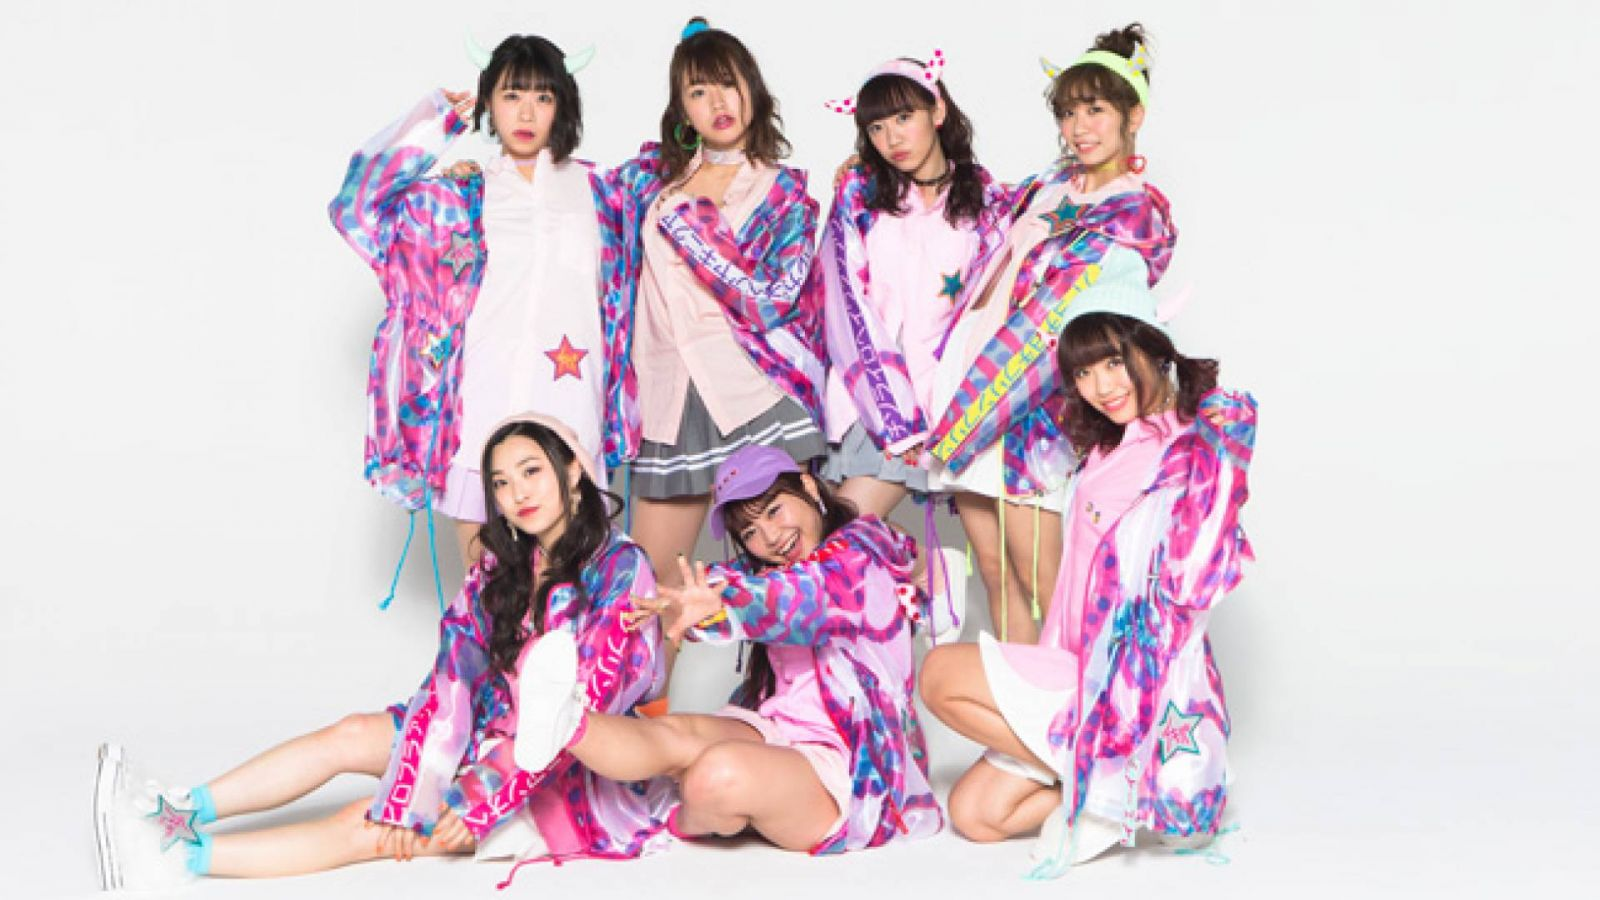 Cheeky Parade © 2017 avex entertainment Inc. All rights reserved.